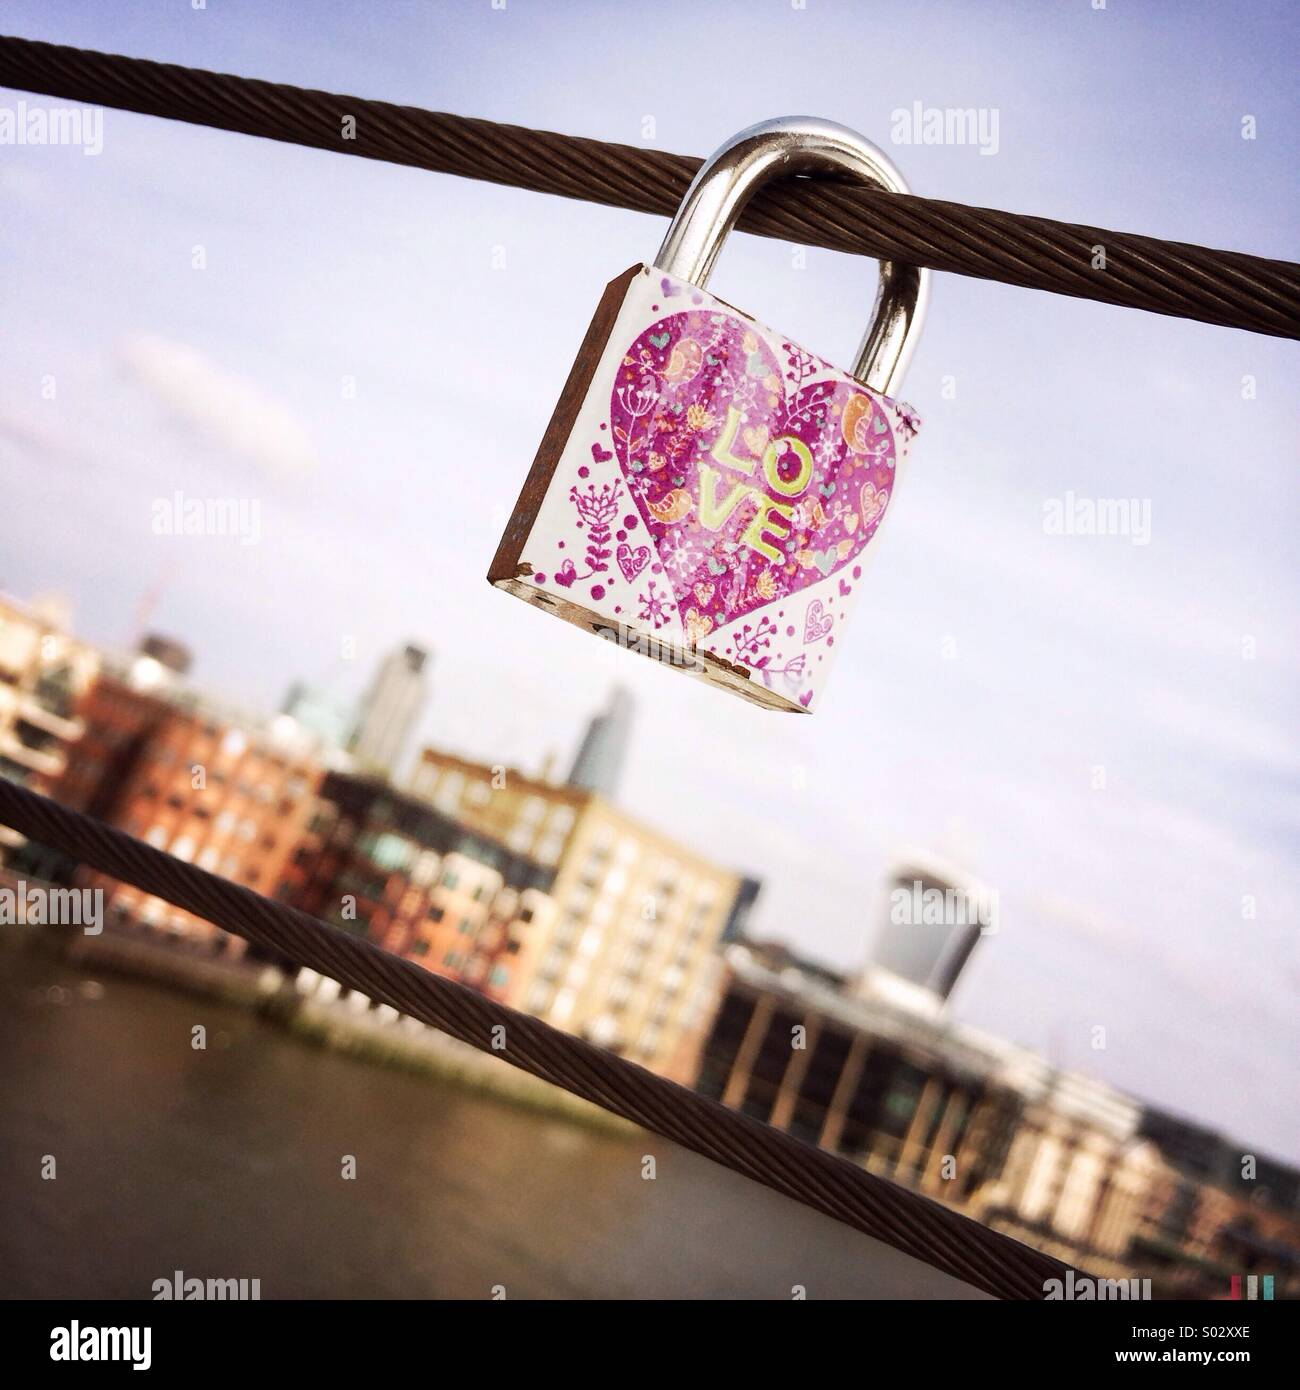 A love lock padlocked to a bridge in London. After the padlock has been locked, the key is thrown away to symbolise - Stock Image